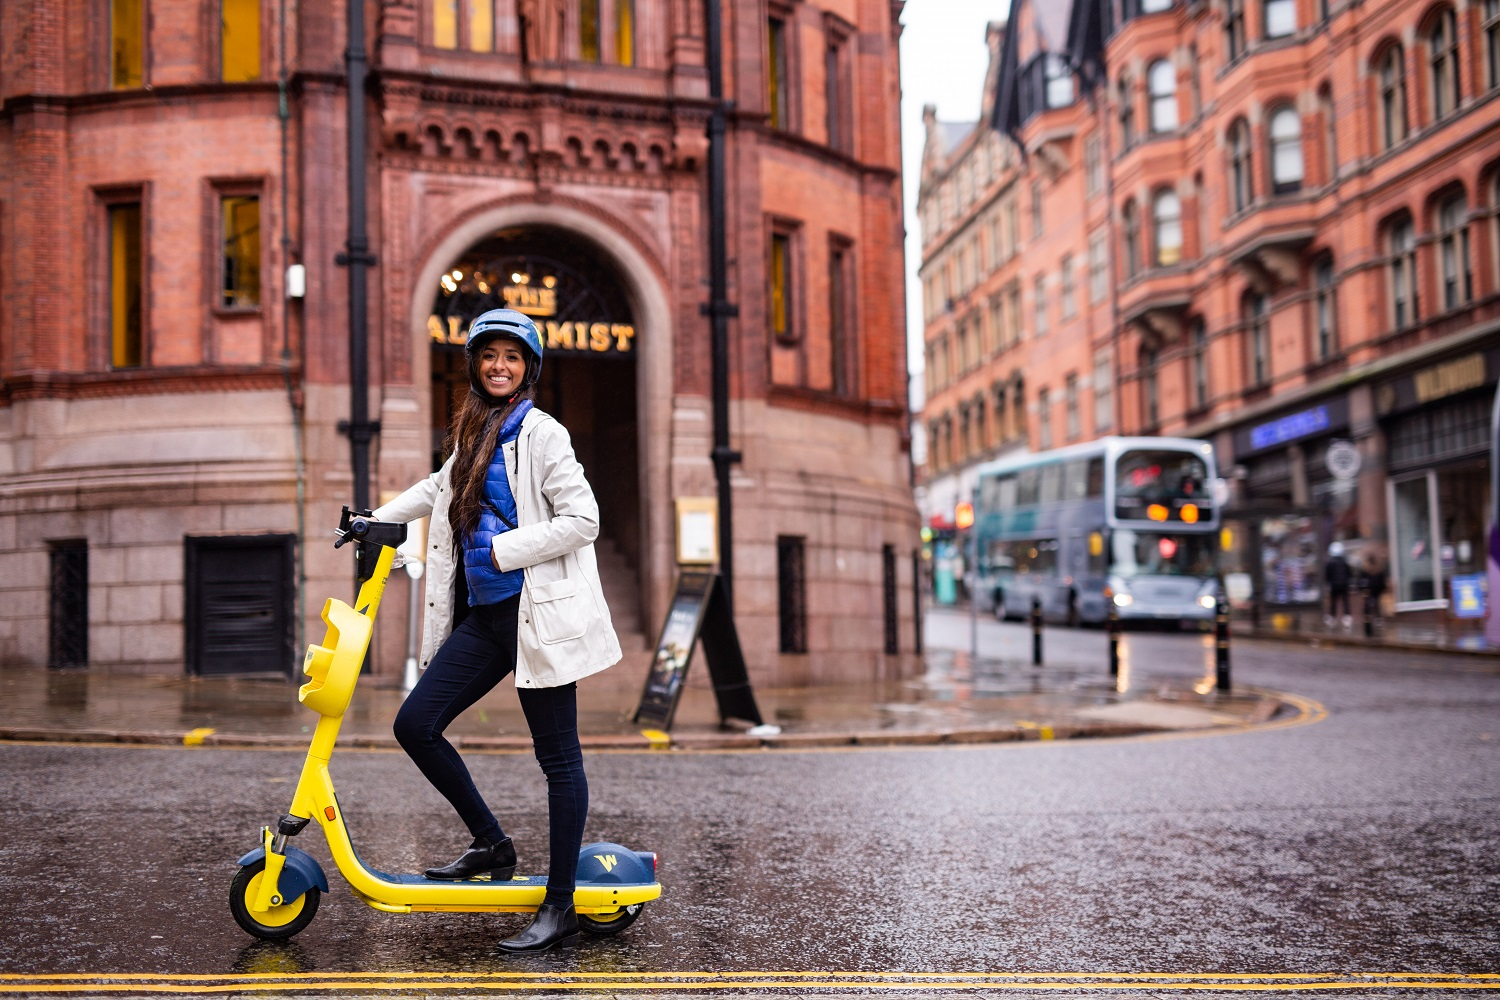 UK trials could quadruple to 47,000 e-scooters nationally